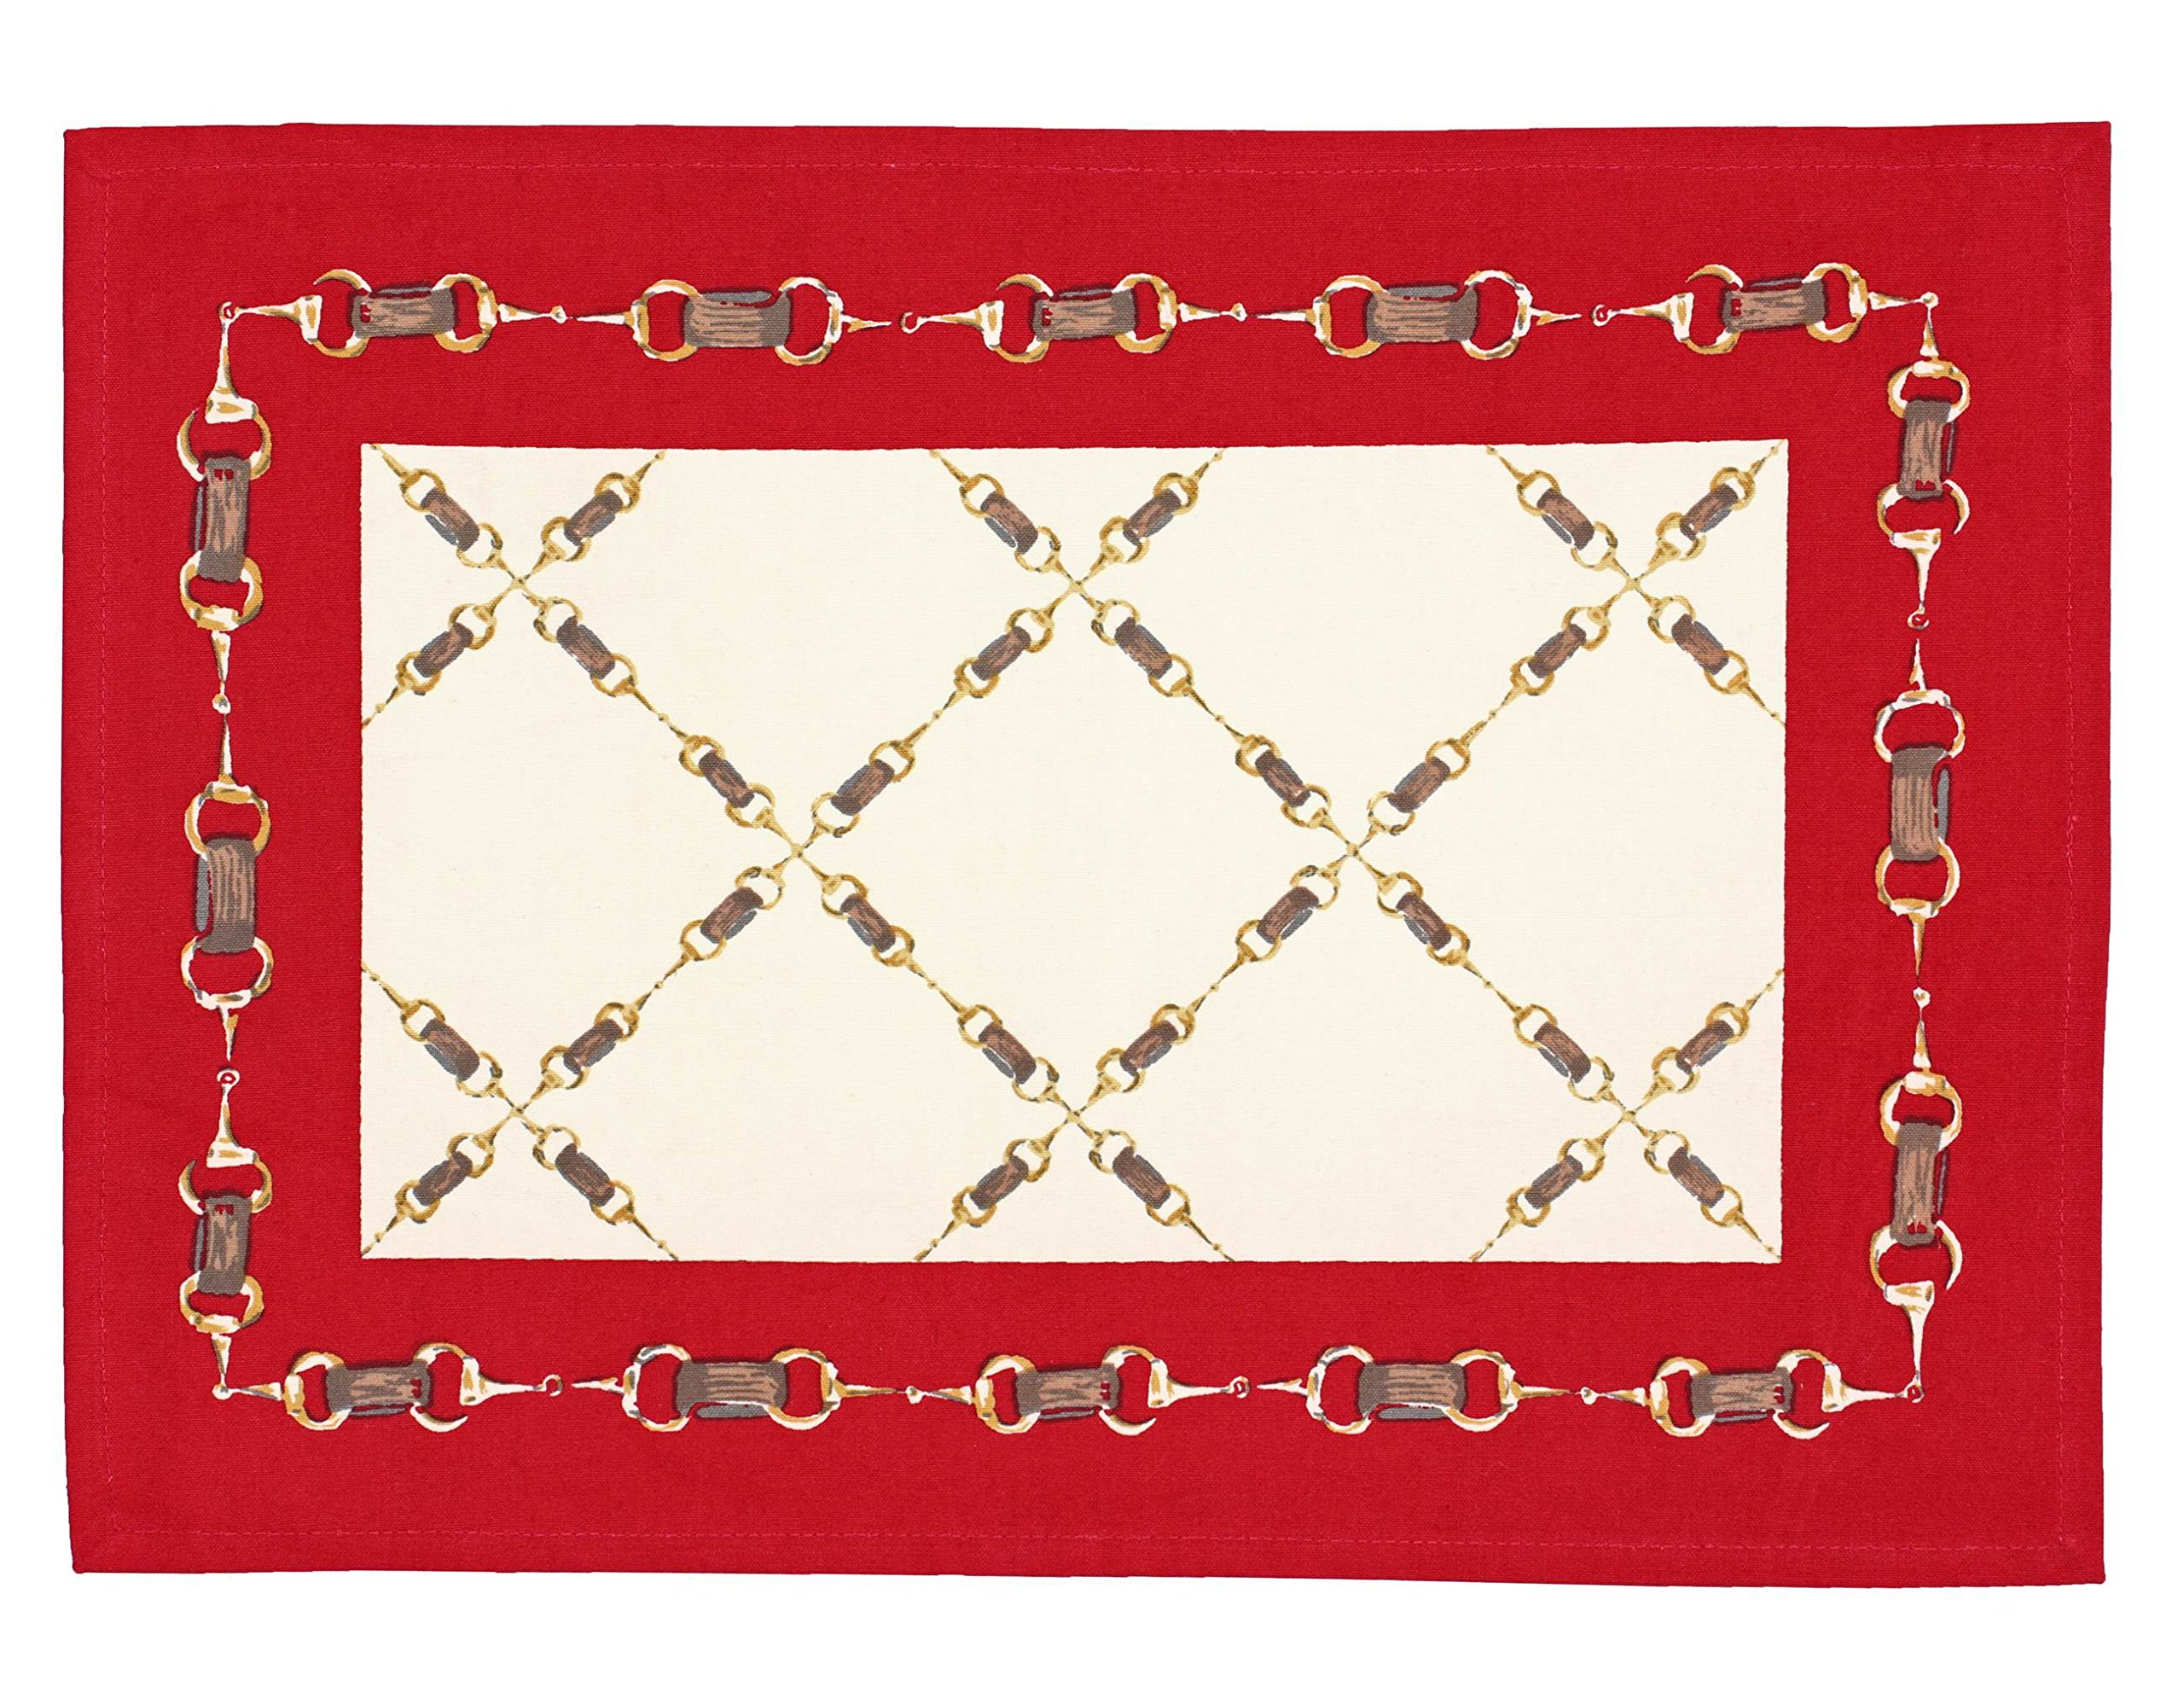 Indian Cotton Placemats for the Kitchen Table - Red Offwhite Geometrical- Set of 6 Washable 13'' x 19'' Place Mats